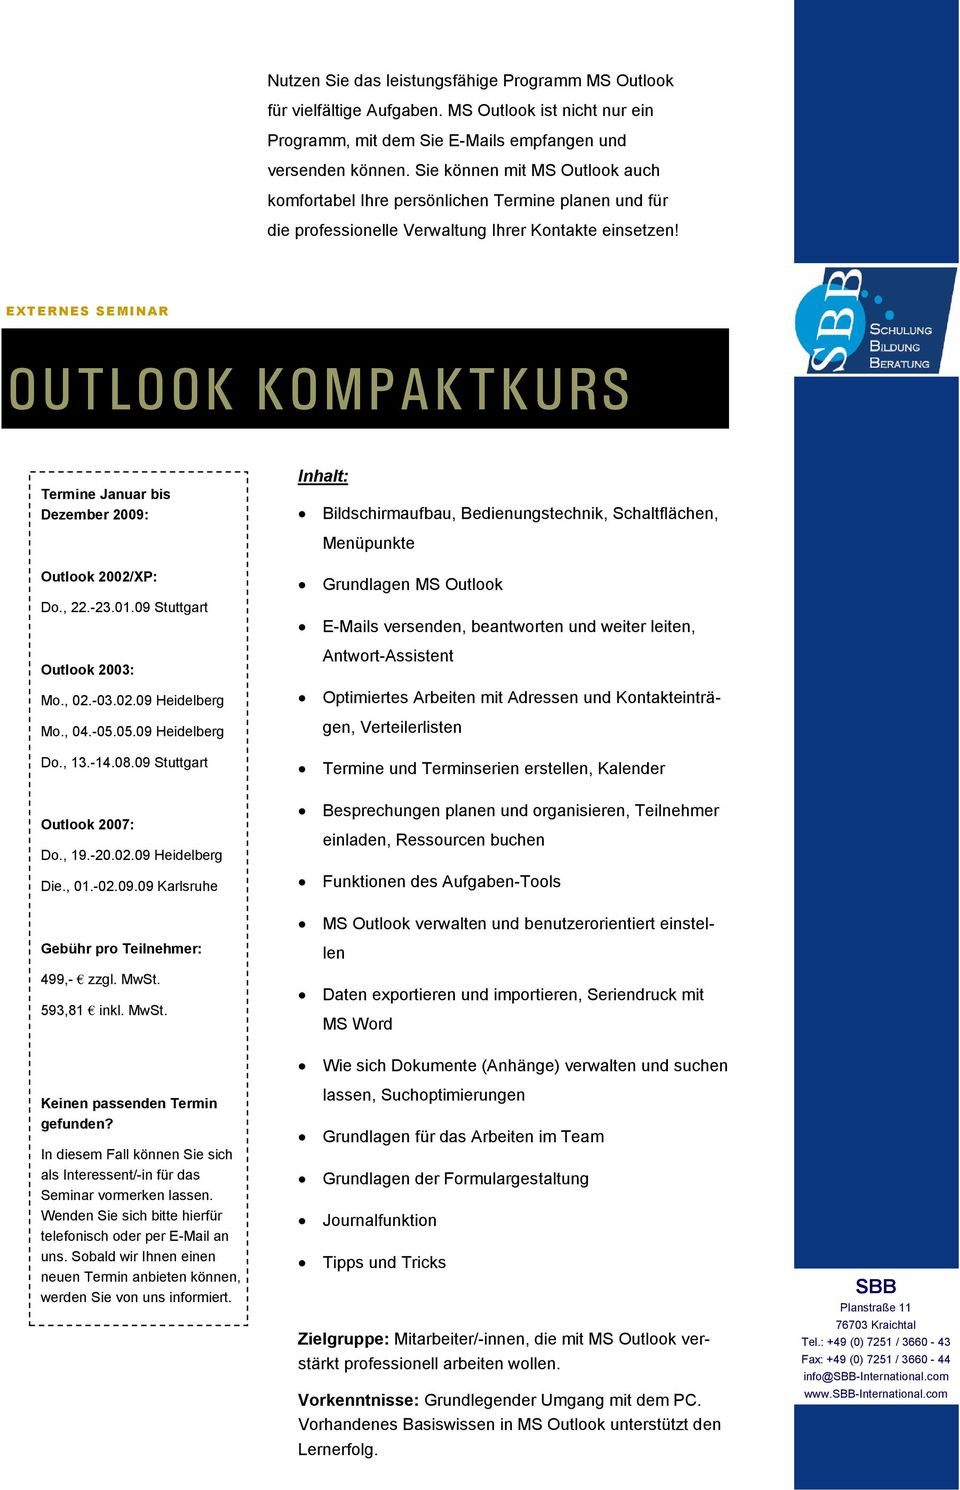 OUTLOOK KOMPAKTKURS Bildschirmaufbau, Bedienungstechnik, Schaltflächen, Menüpunkte Outlook 2002/XP: Do., 22.-23.01.09 Stuttgart Outlook 2003: Mo., 02.-03.02.09 Heidelberg Mo., 04.-05.05.09 Heidelberg Do.